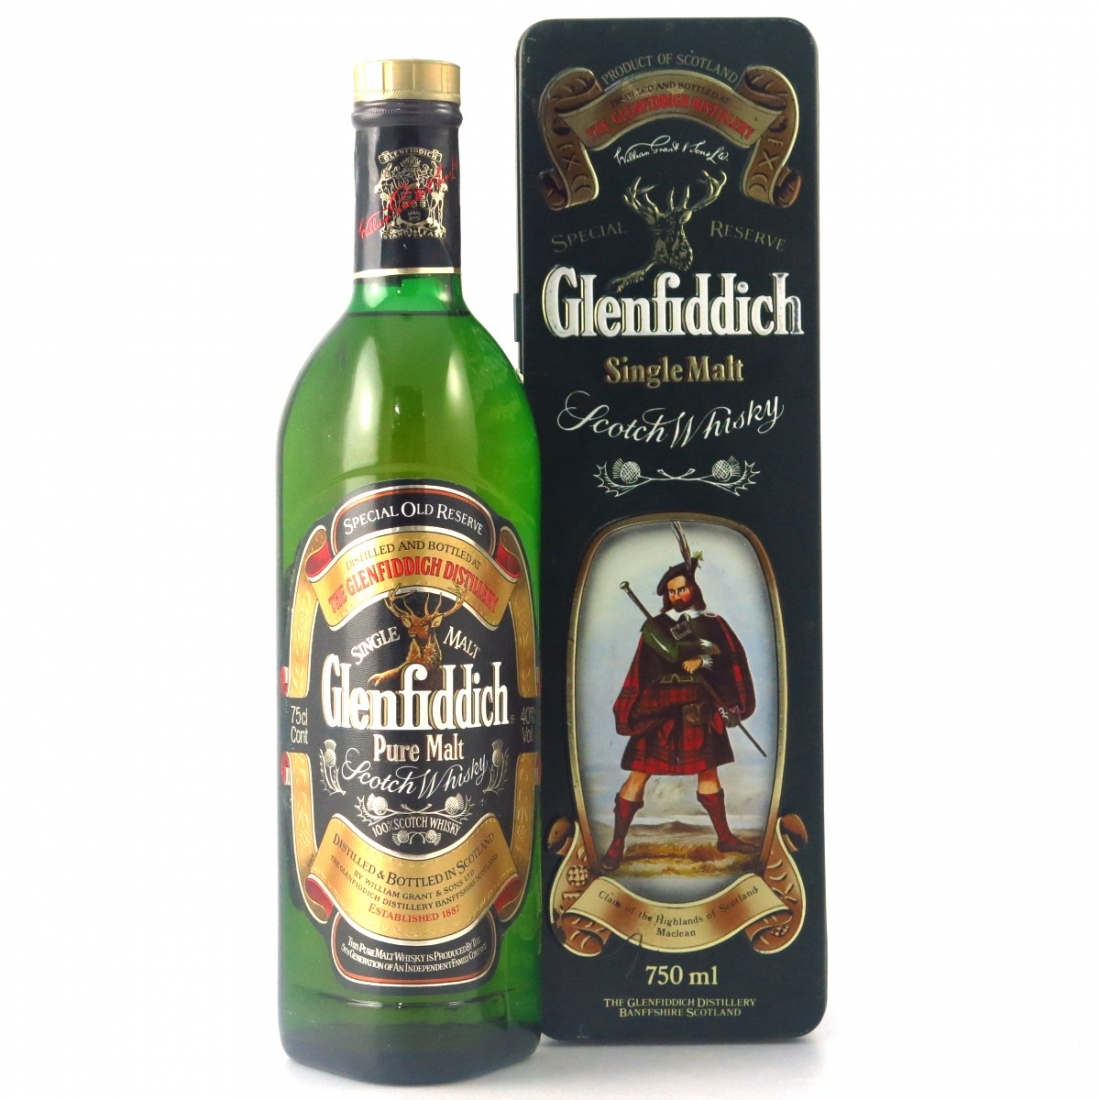 Glenfiddich Clans of the Highlands 75cl / Clan Maclean